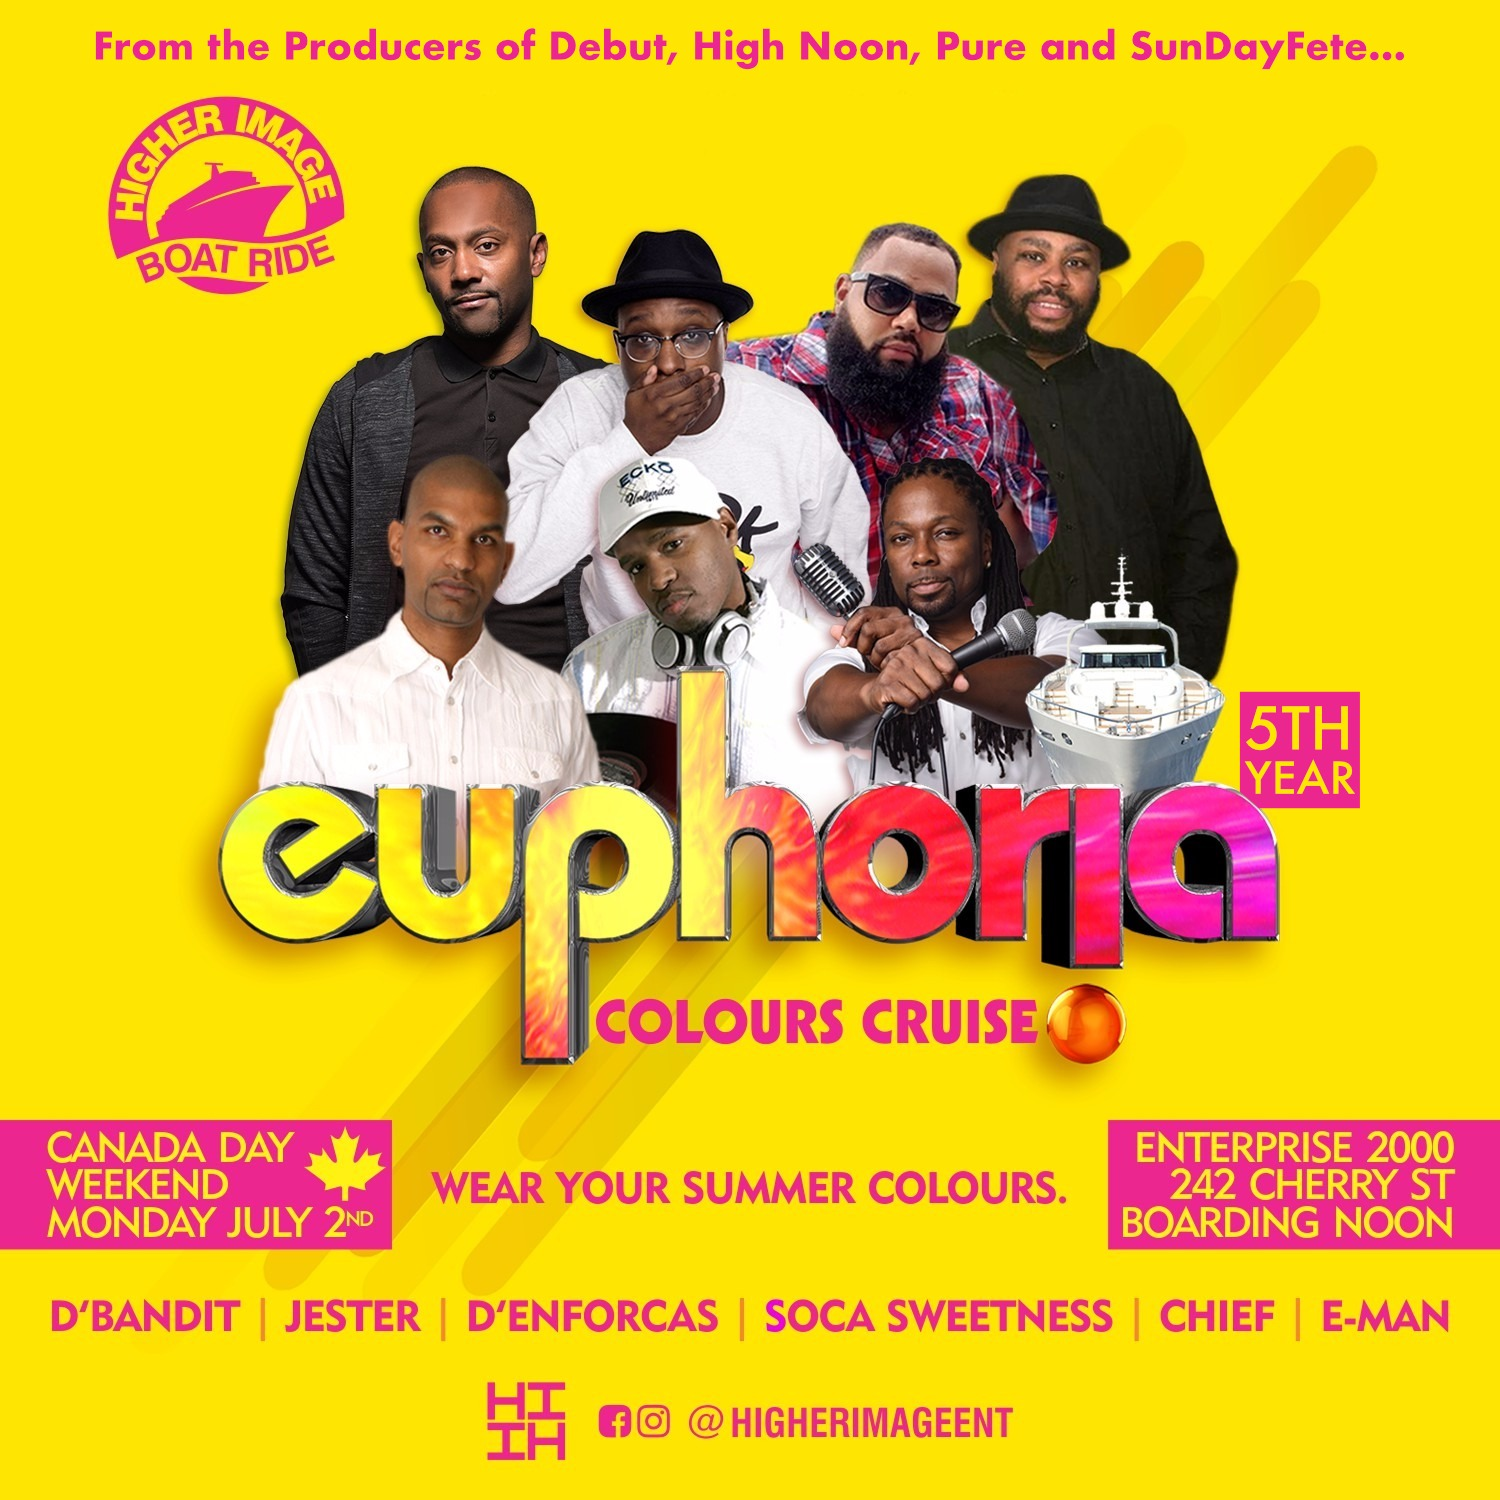 Euphoria Colours Cruise 2018